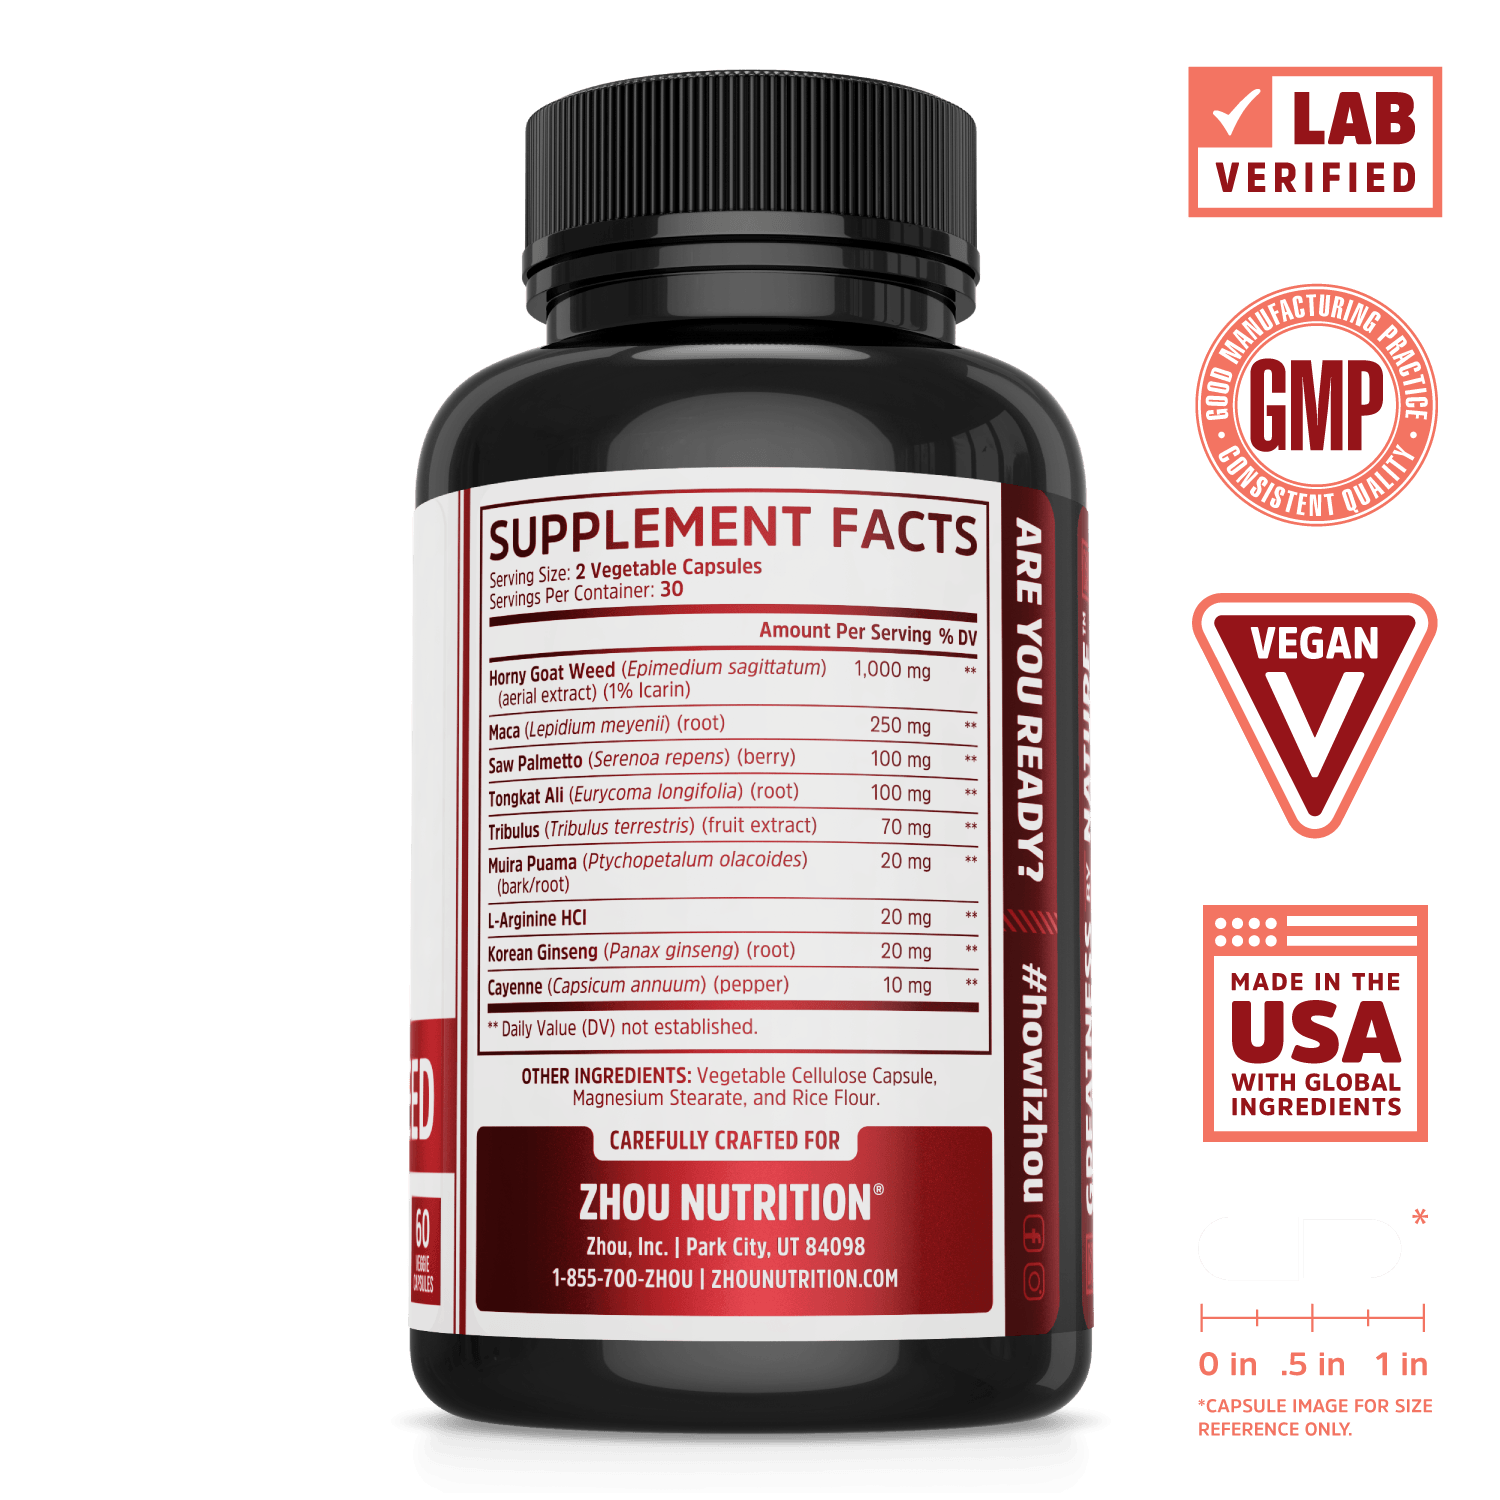 Zhou Nutrition Horny Goat Weed energy and vitality supplement. Bottle side. Lab verified, good manufacturing practices, vegan, made in the USA with global ingredients.